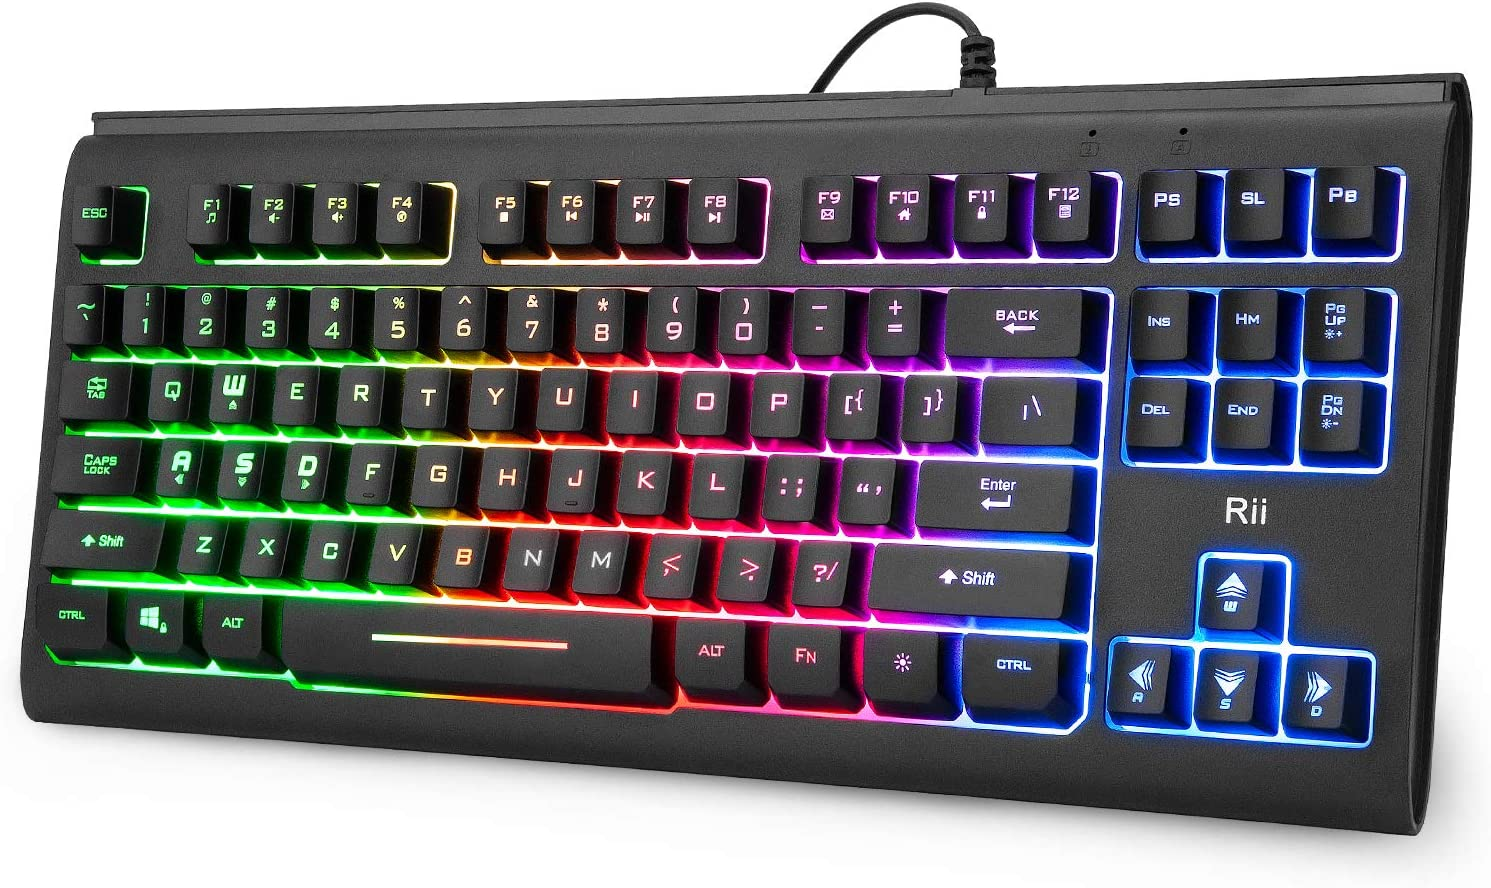 Rii Primer RGB Compact Gaming Office Keyboard RK104,Backlight Keyboard,Small 87 Keys No Number Pad Keyboard for Windows PC Laptop Desktop